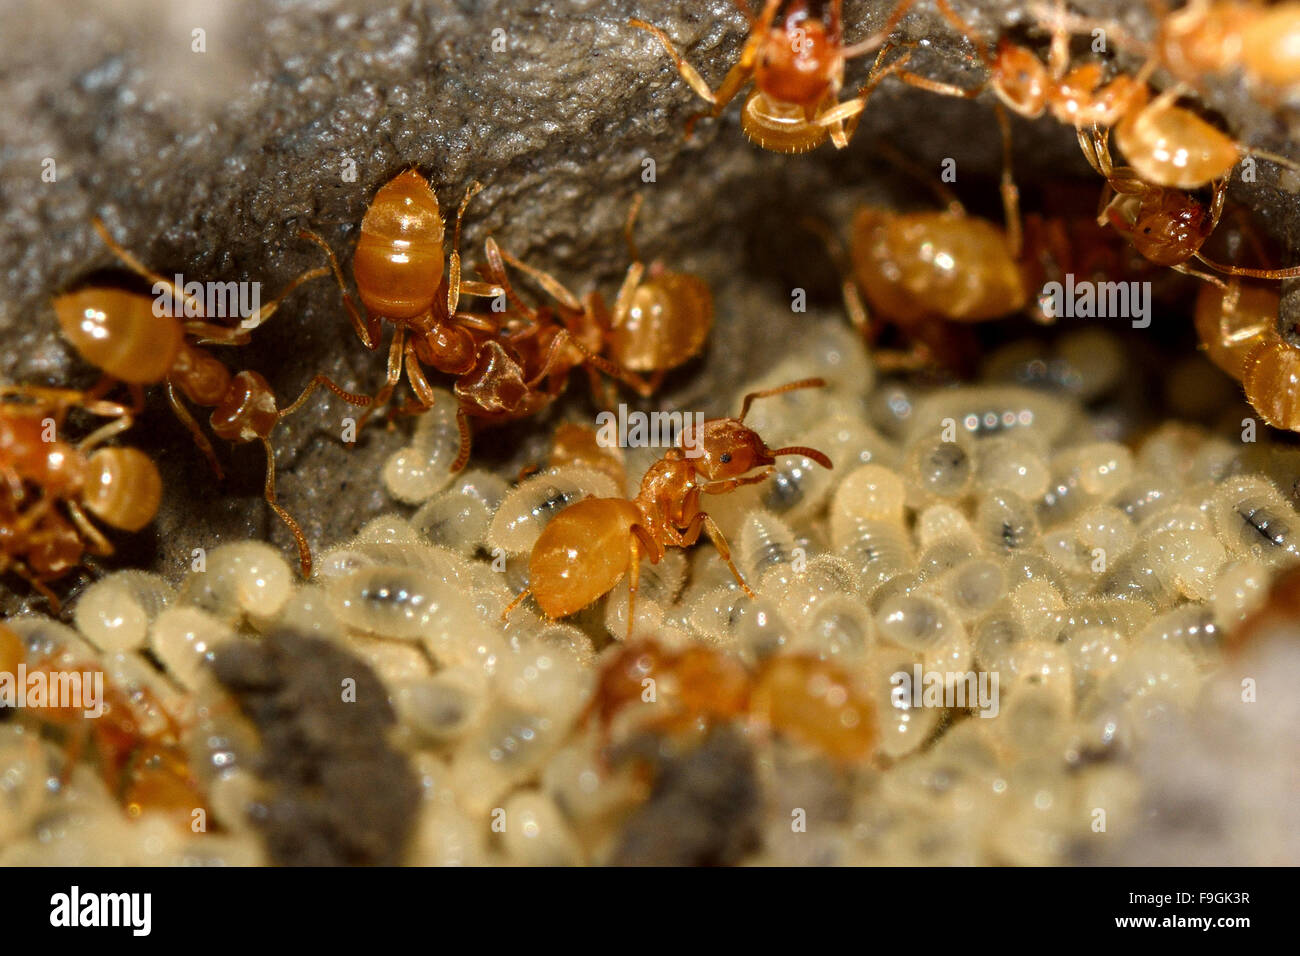 lasius flavus stockfotos lasius flavus bilder alamy. Black Bedroom Furniture Sets. Home Design Ideas